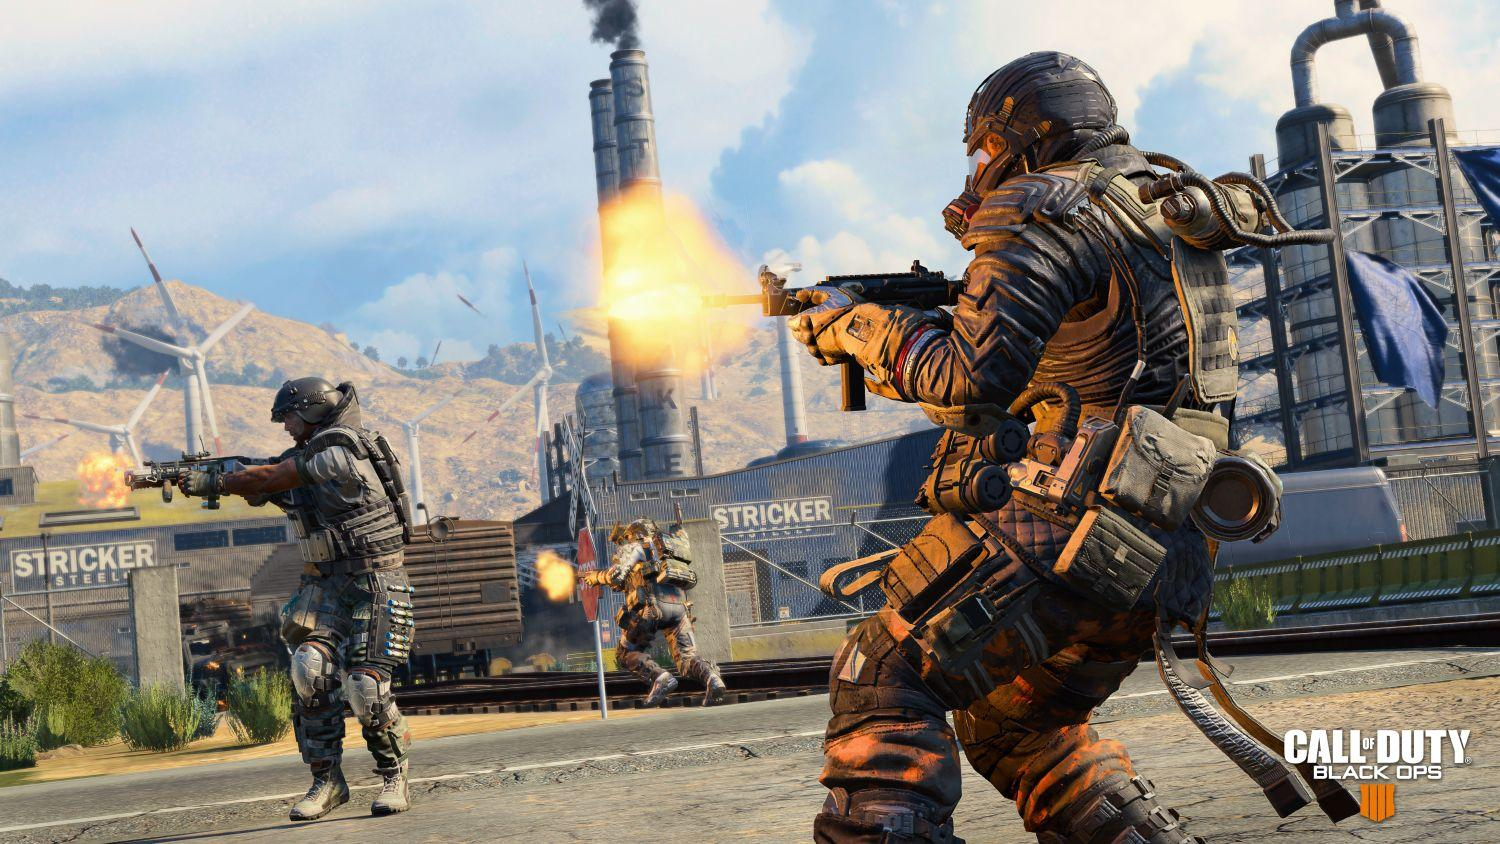 Call of Duty: Black Ops 4's battle royale mode Blackout is in open beta right now